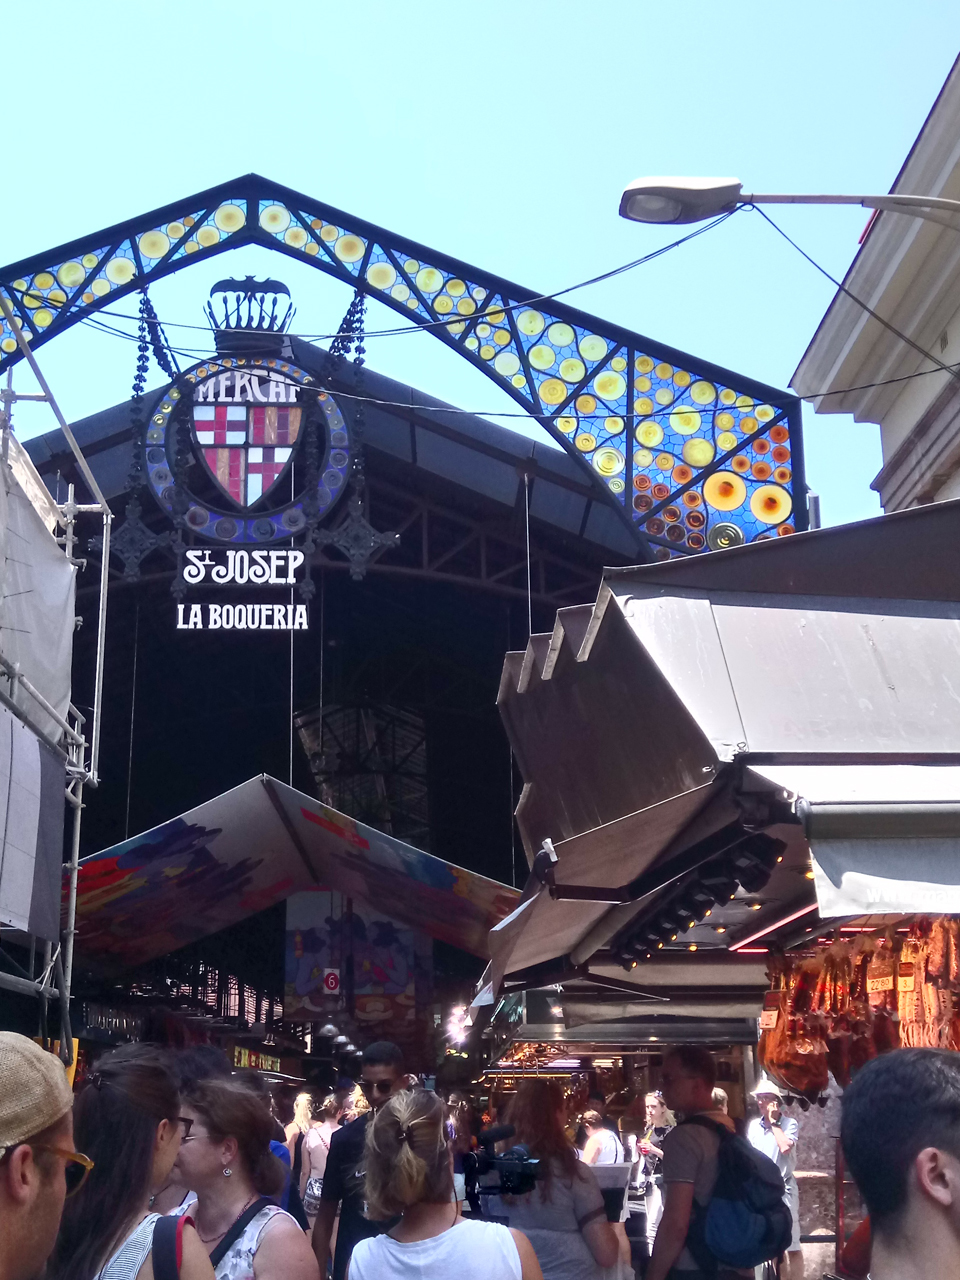 La Boqueria - the main entrance